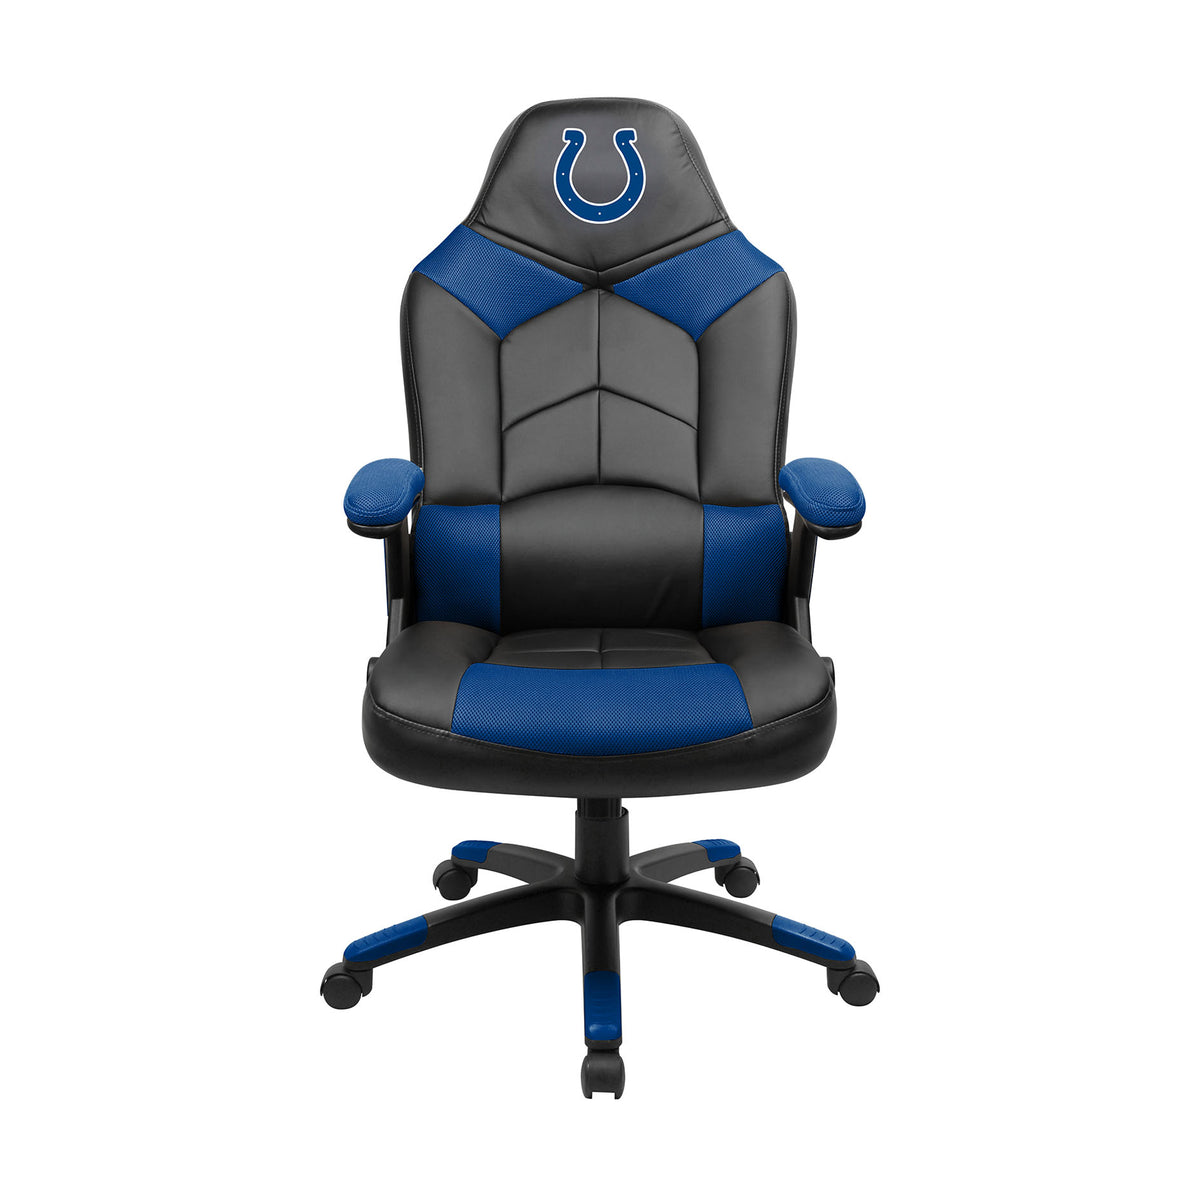 Indianapolis Colts Oversized Gaming Chair